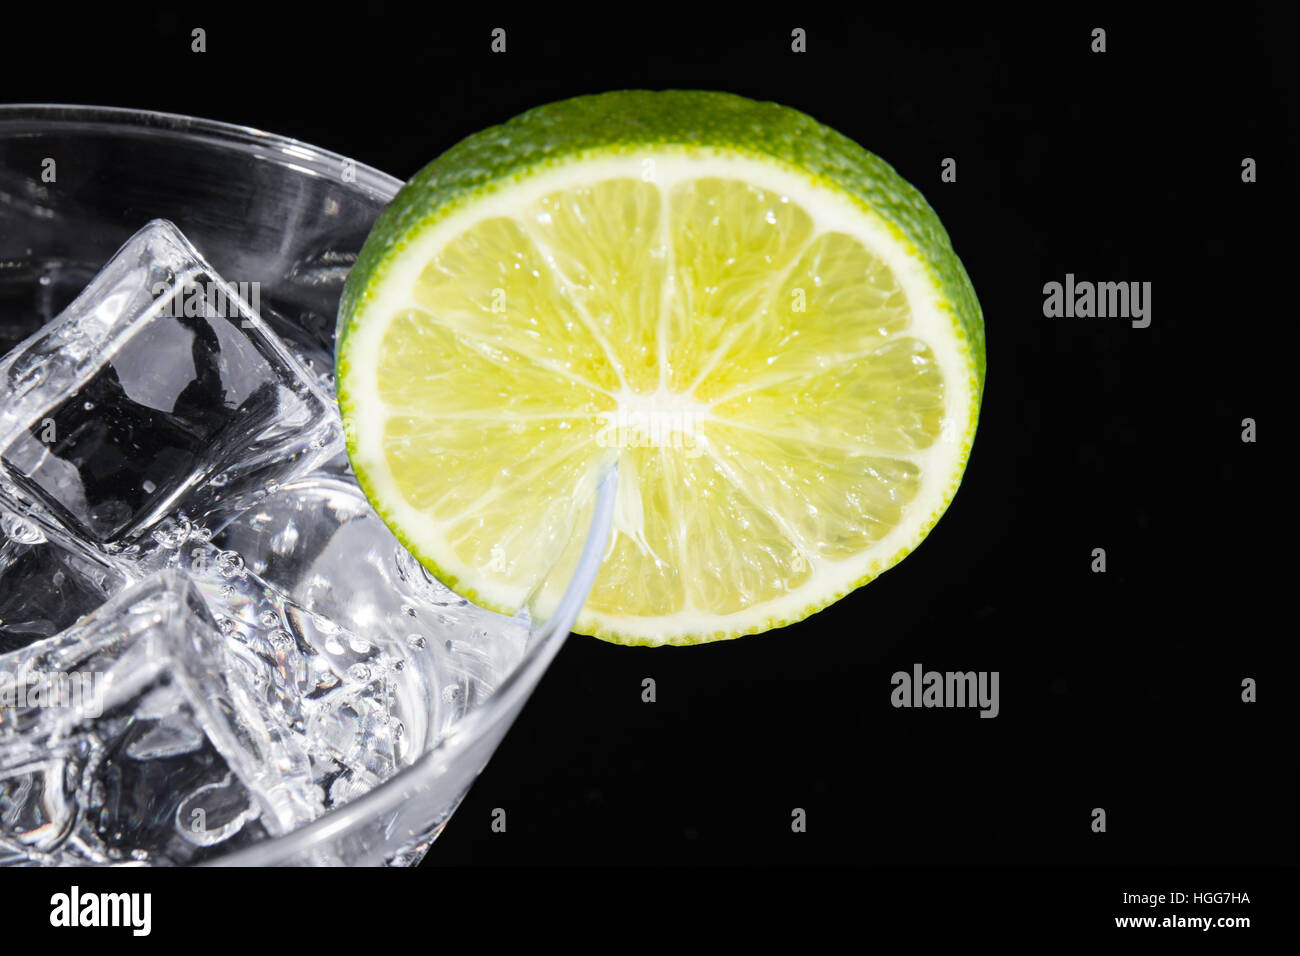 Sparkling beverage in a martini glass with a lime slice on a black background - Stock Image